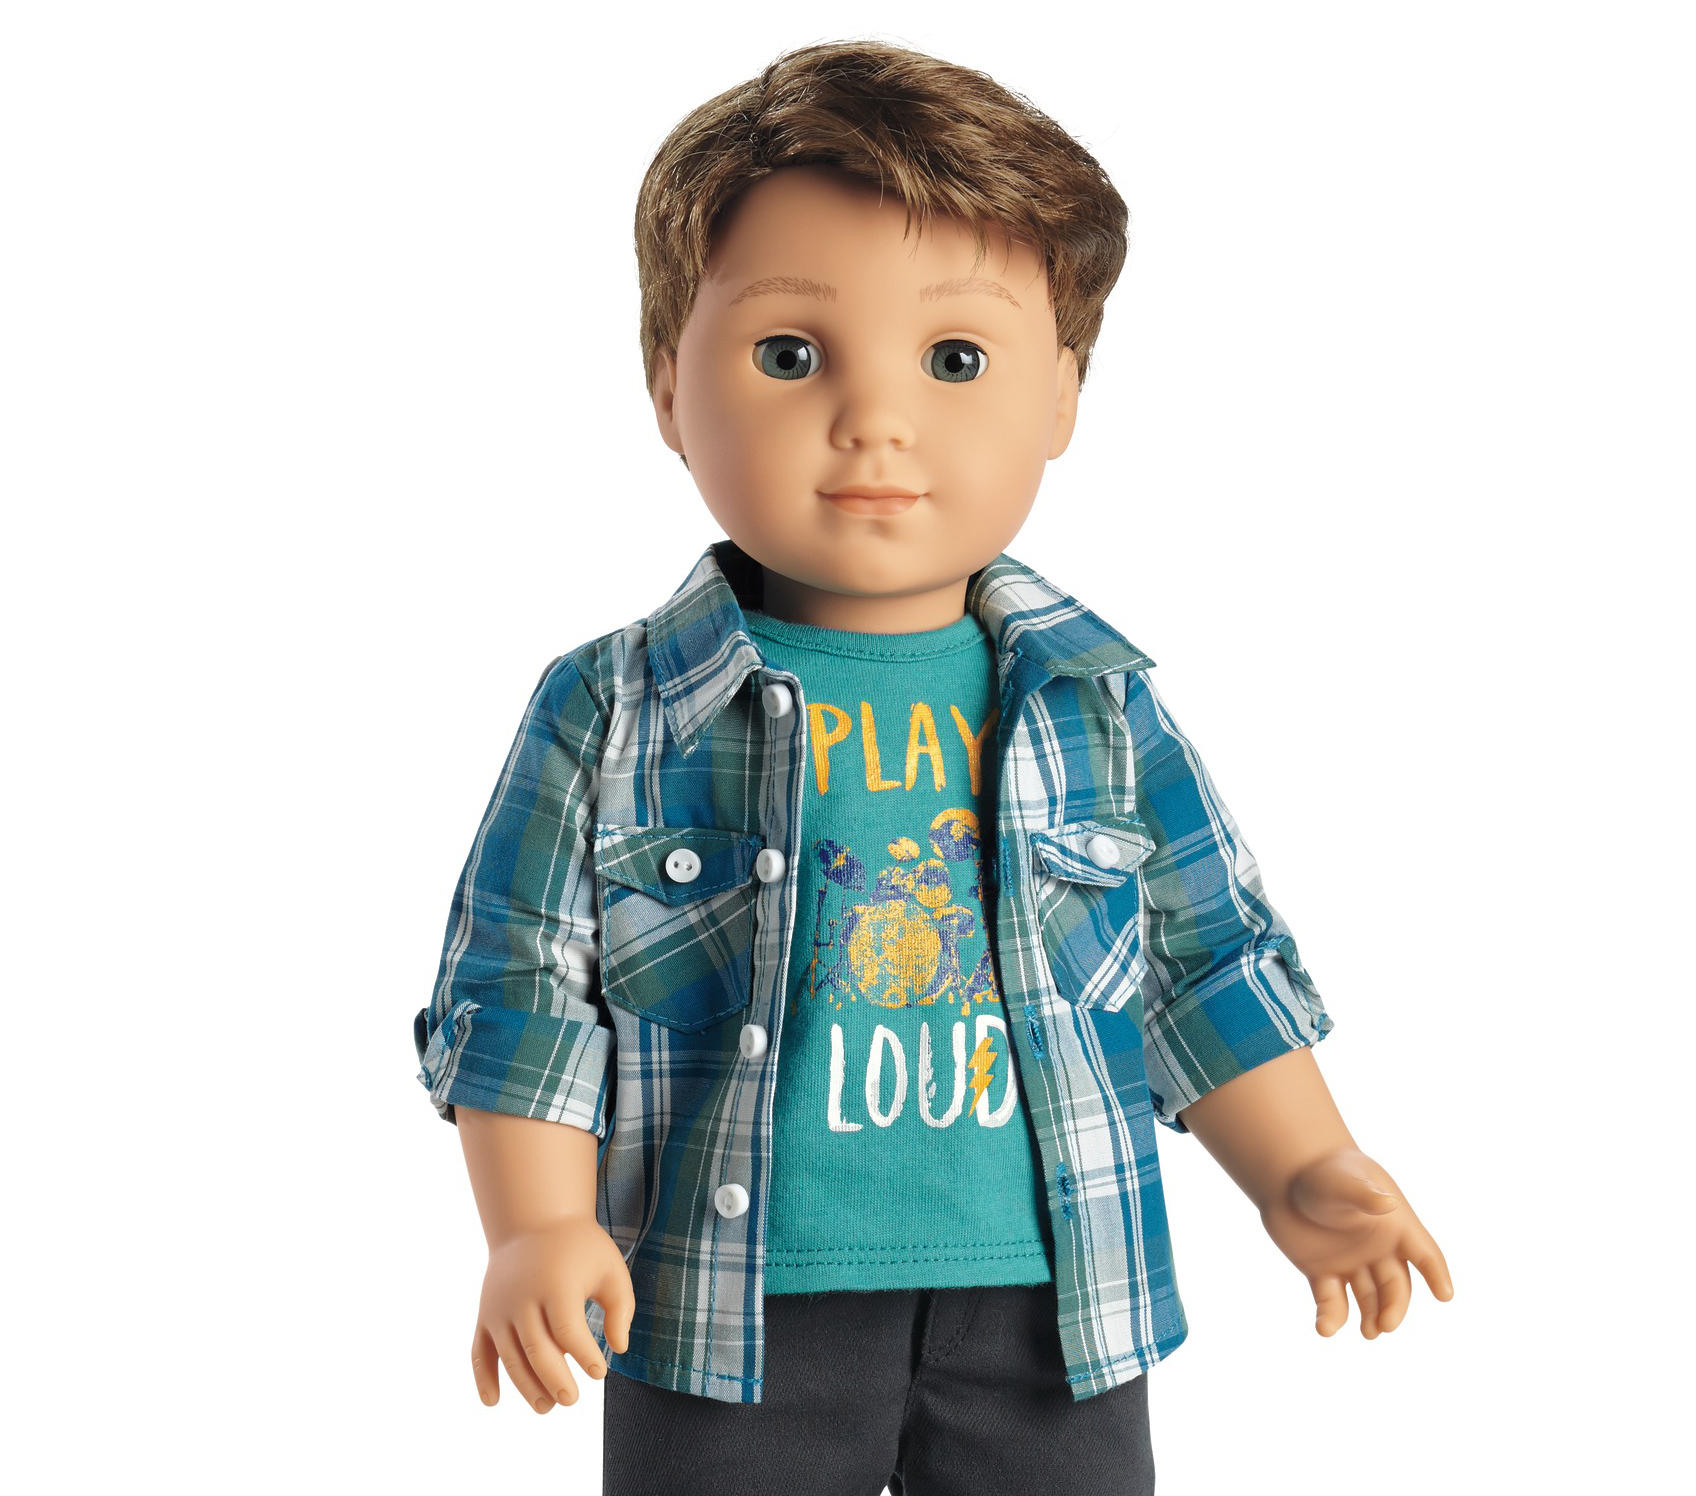 American Girl To Release Its First Boy Doll - Cbs News-2699